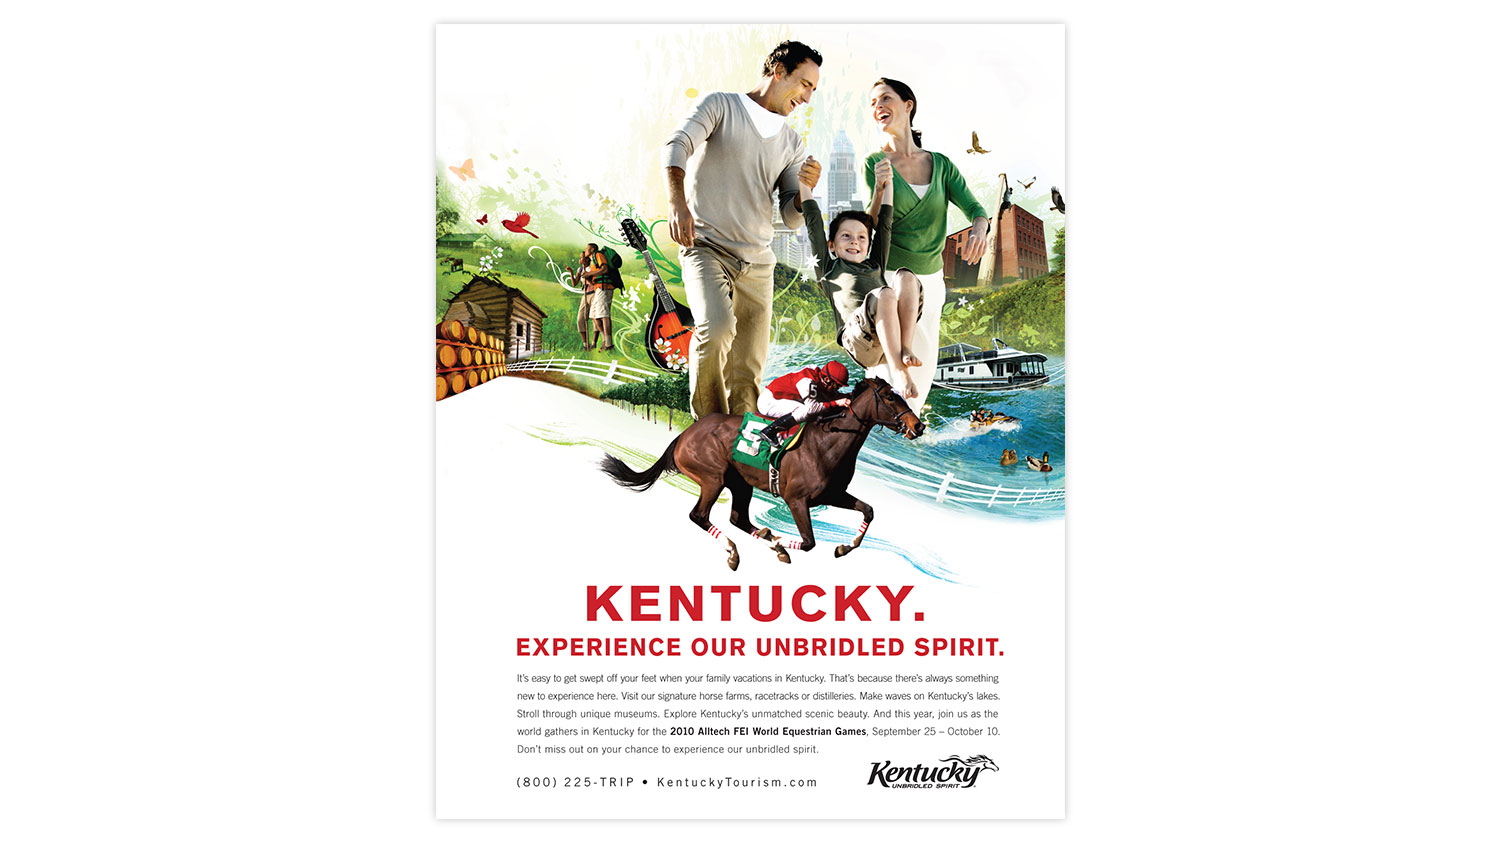 Kentucky Tourism Unbridled Spirit